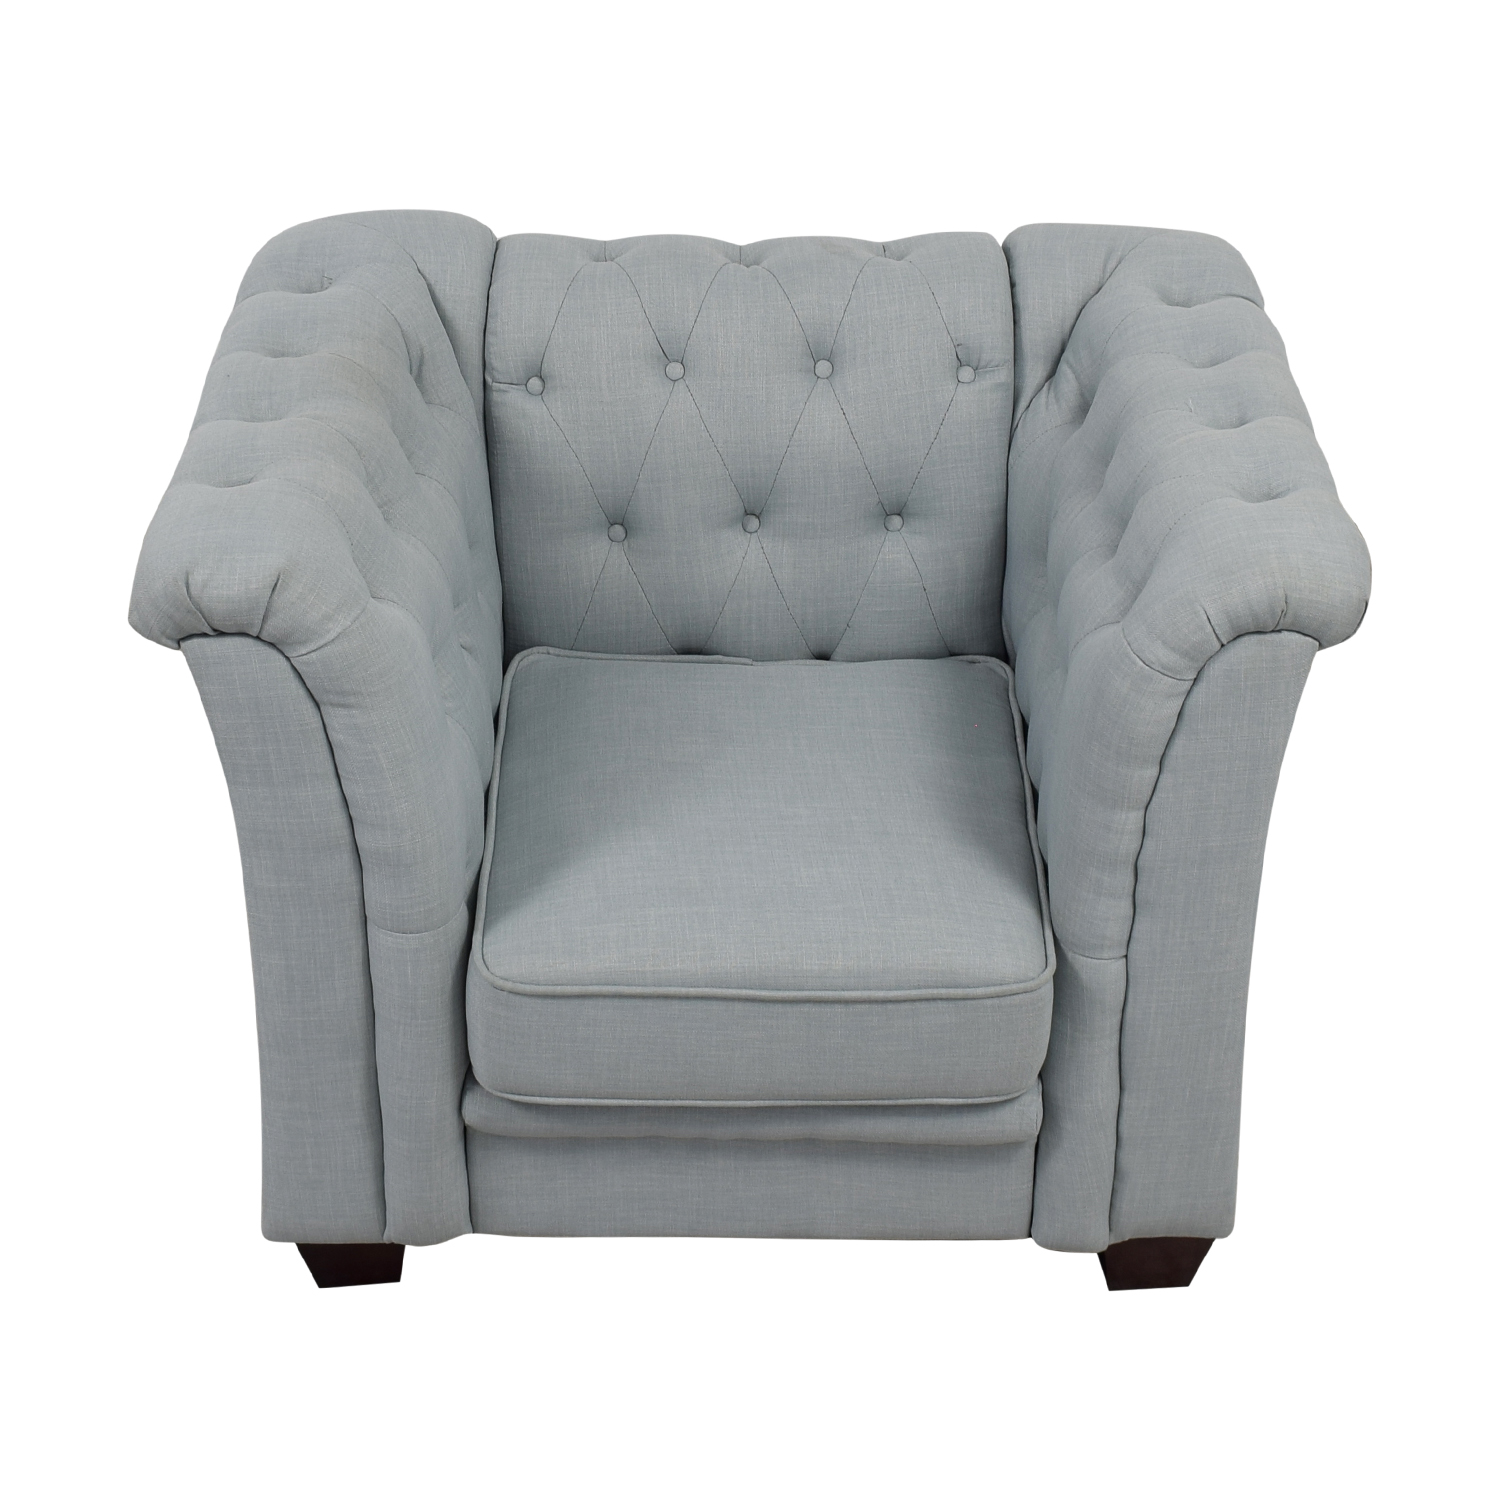 shop Delvi Furniture Sky Blue Tufted Accent Chair Delvi Furniture Chairs